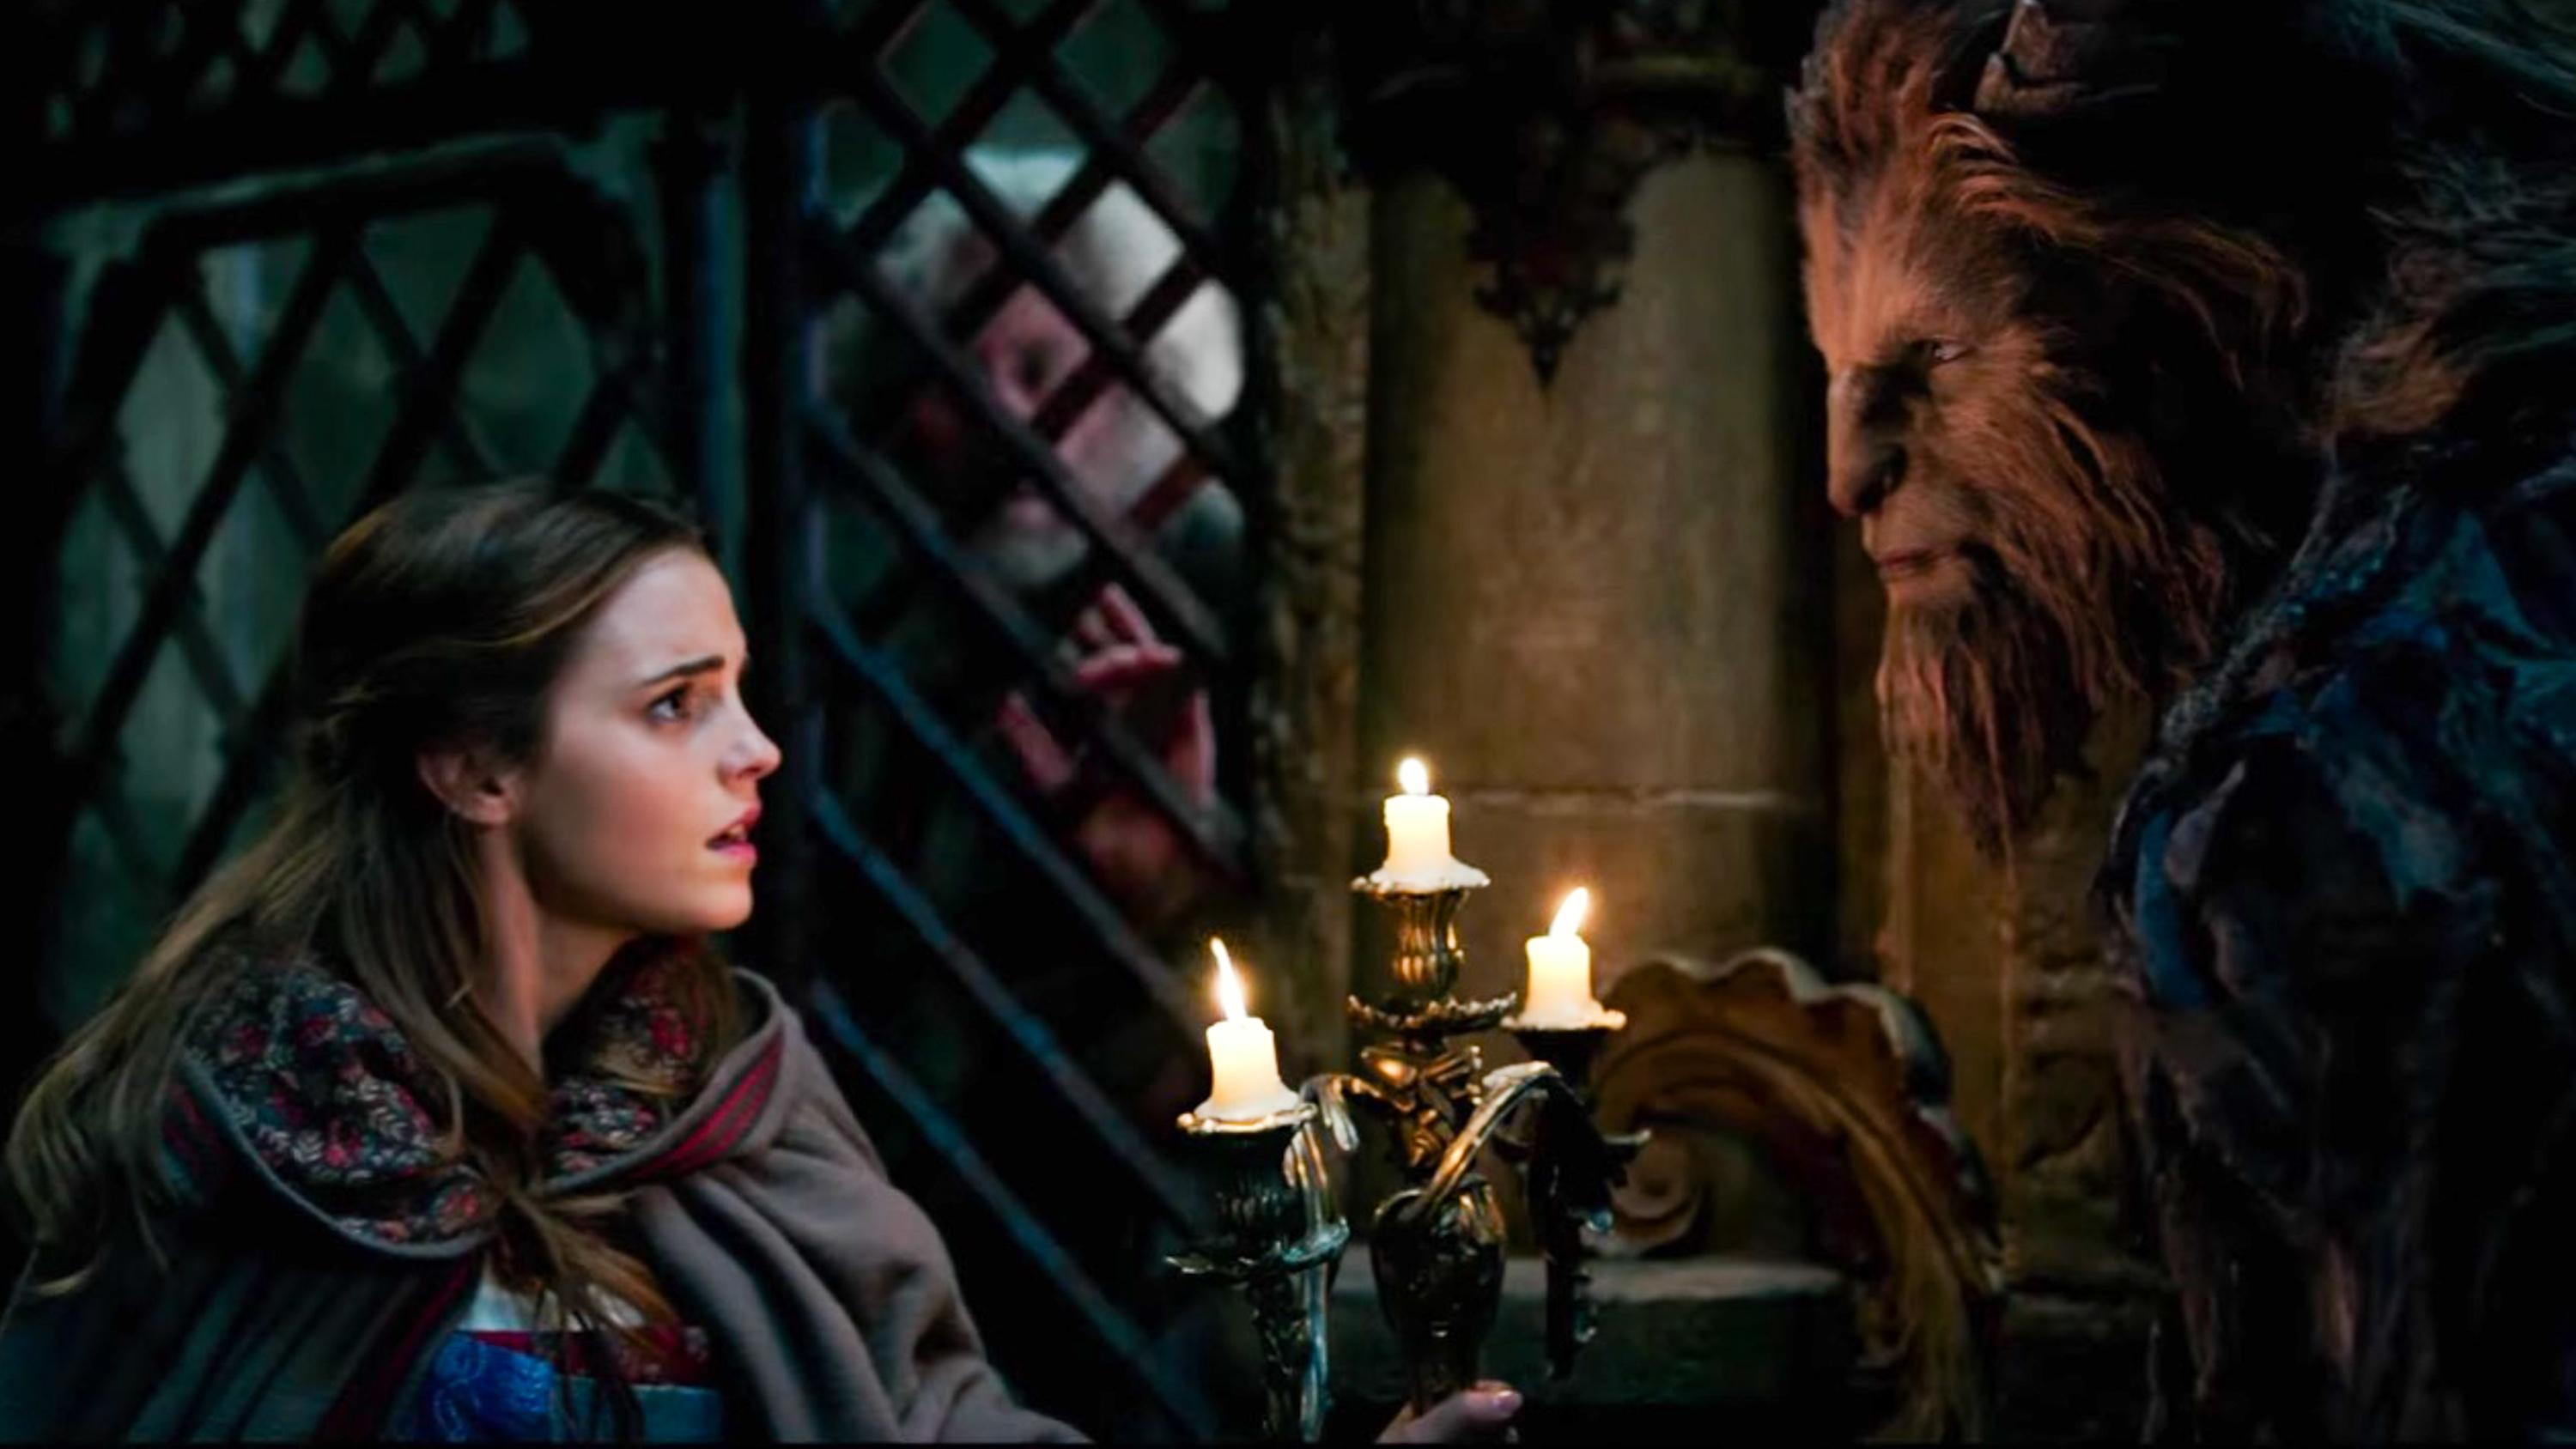 What critics are saying about the new 'Beauty and the Beast'